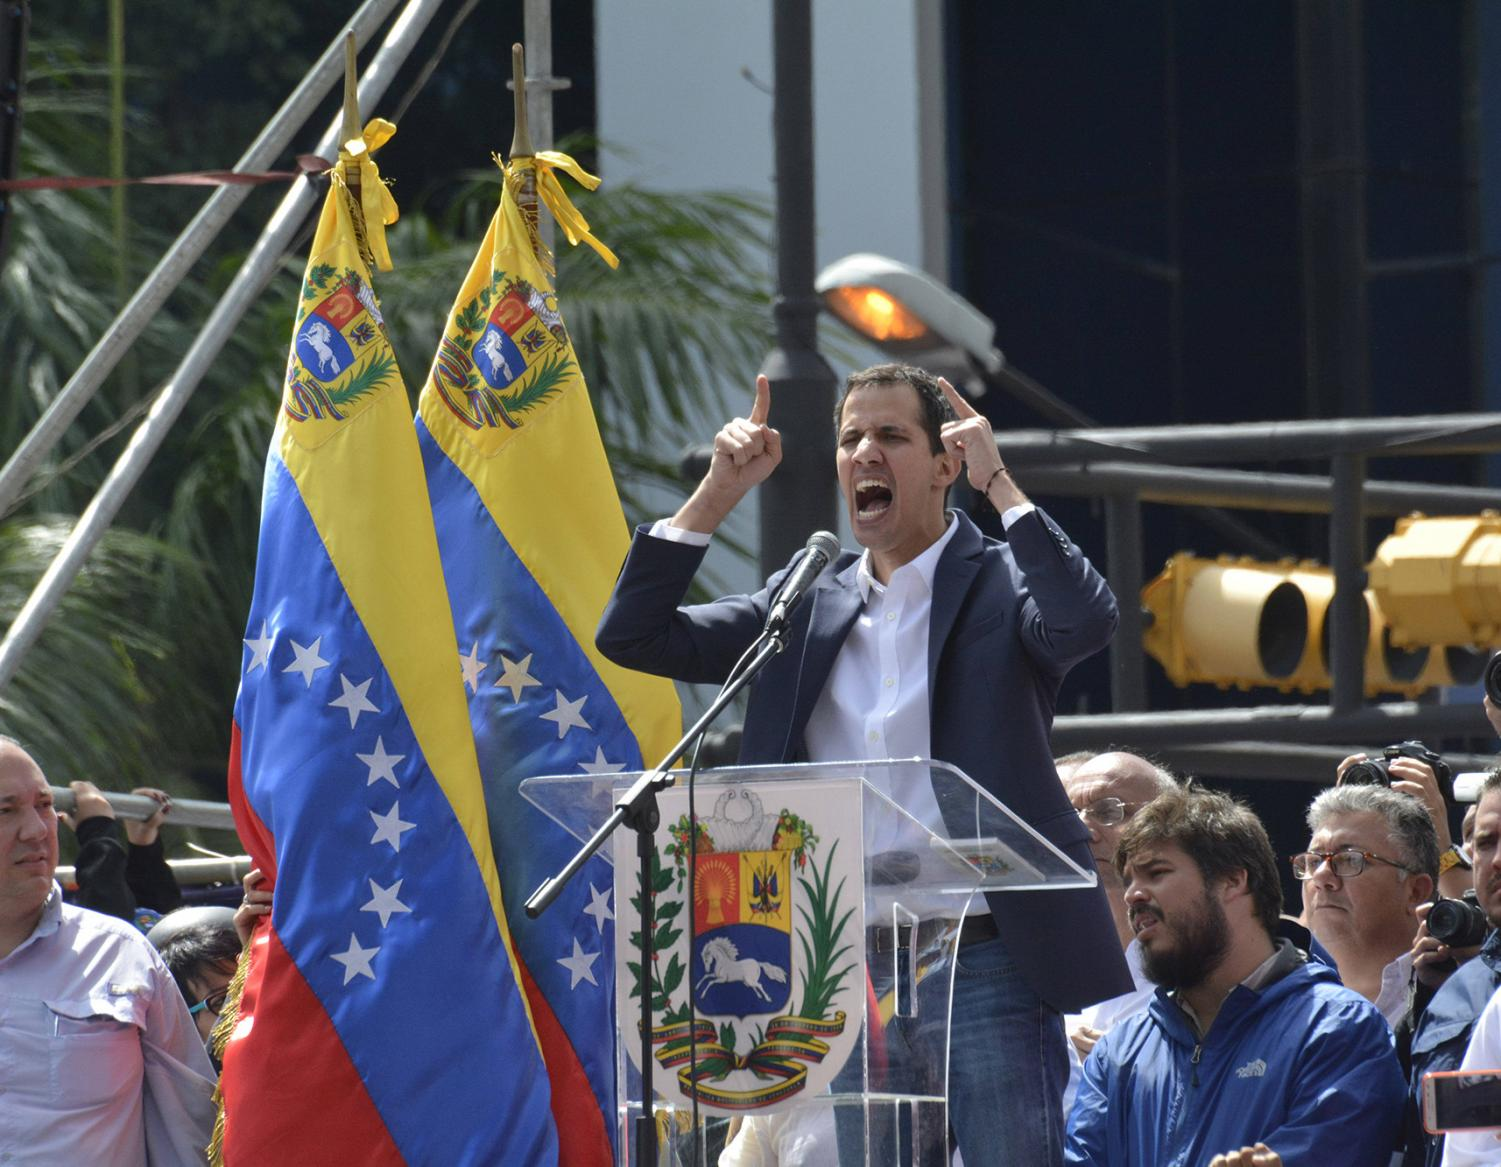 Opinion Columnist Colin Horning discusses the swearing-in of the new interim president of Venezuela, Juan Guaidó, and the socialist regime which led to the country's ultimate economic downfall.